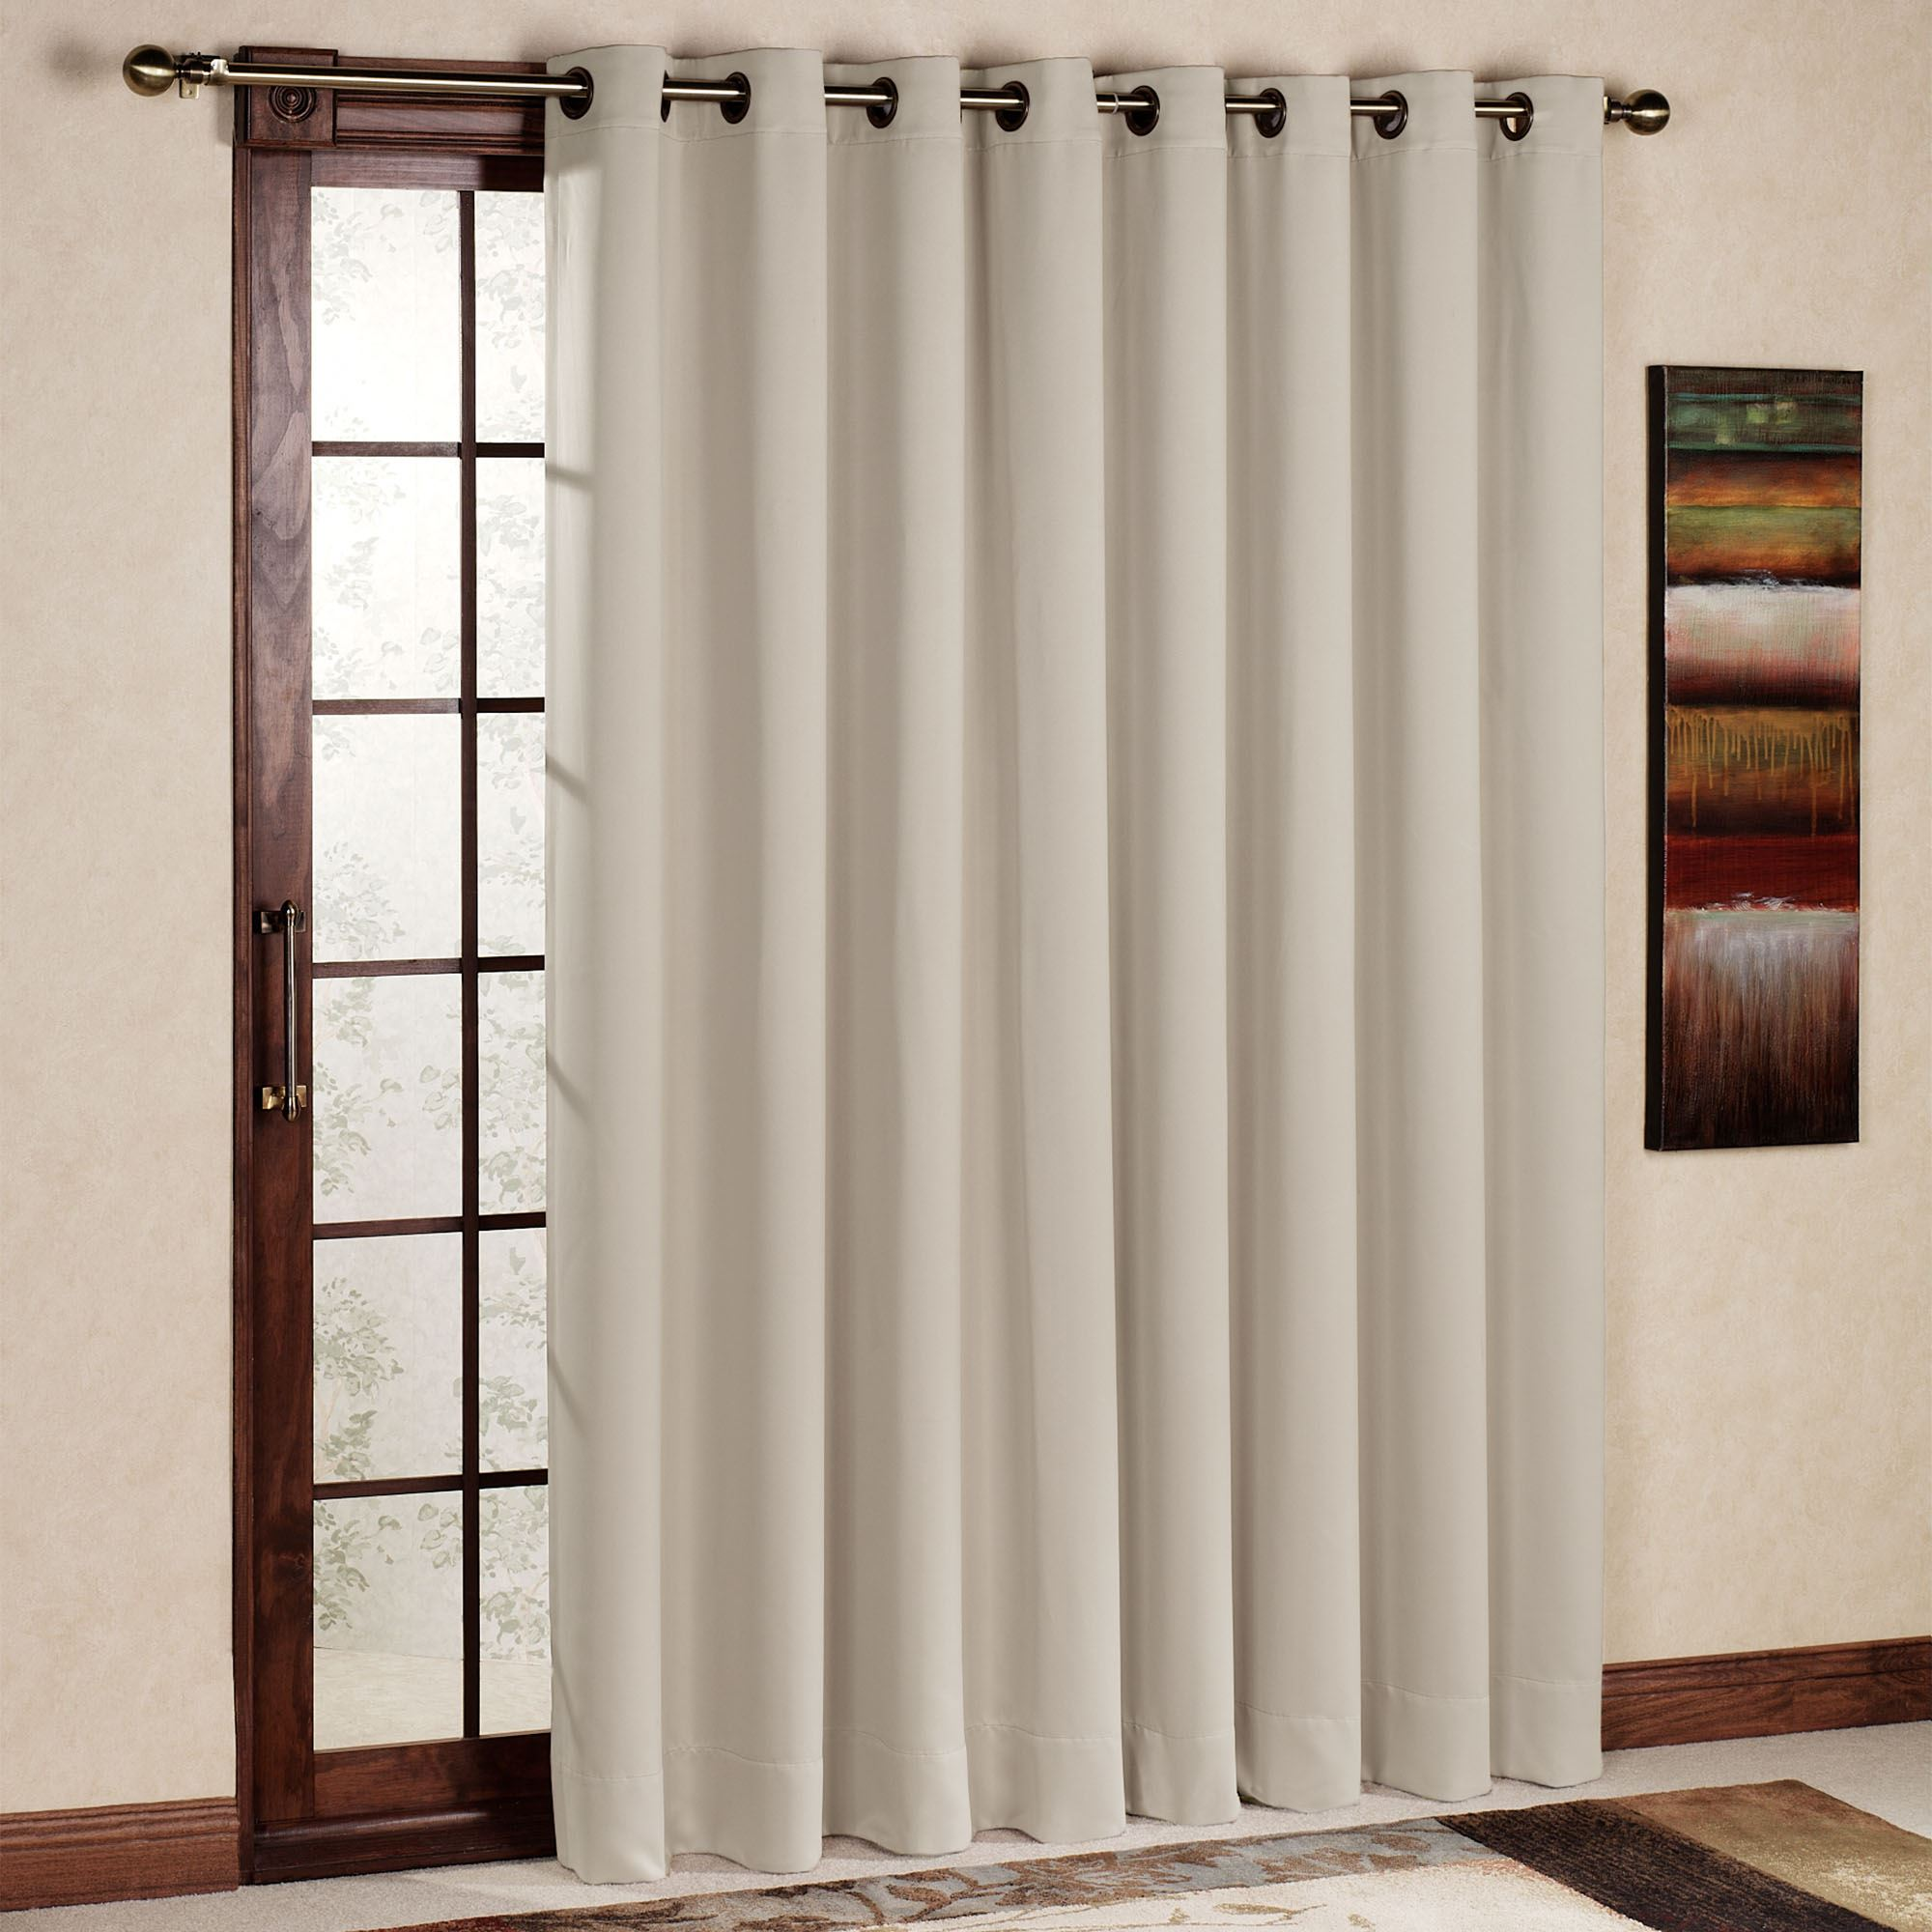 valance long grommet mount inside treatments curtains hang typical large rod curtain sizes from rings drapes your ways the grommets inch rods ceiling mccurtaincounty panels window how hanging with for own can sheers size to way best make of select drop